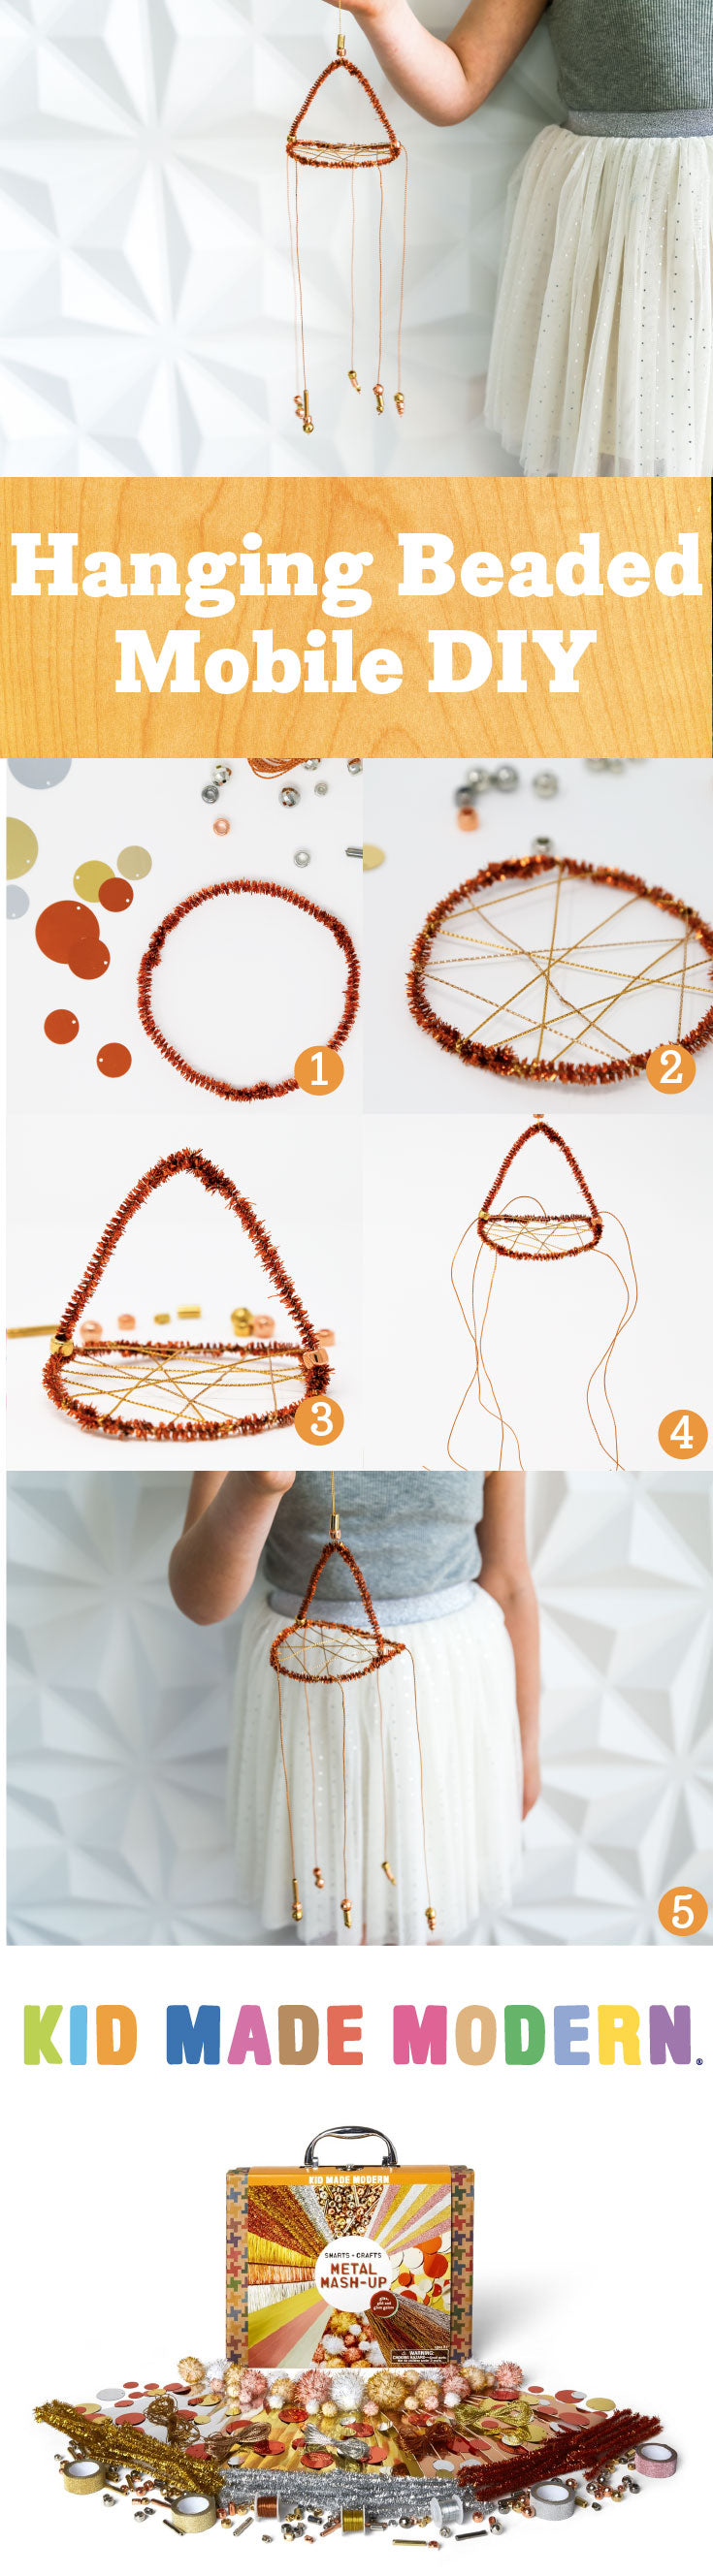 beaded mobile Pinterest